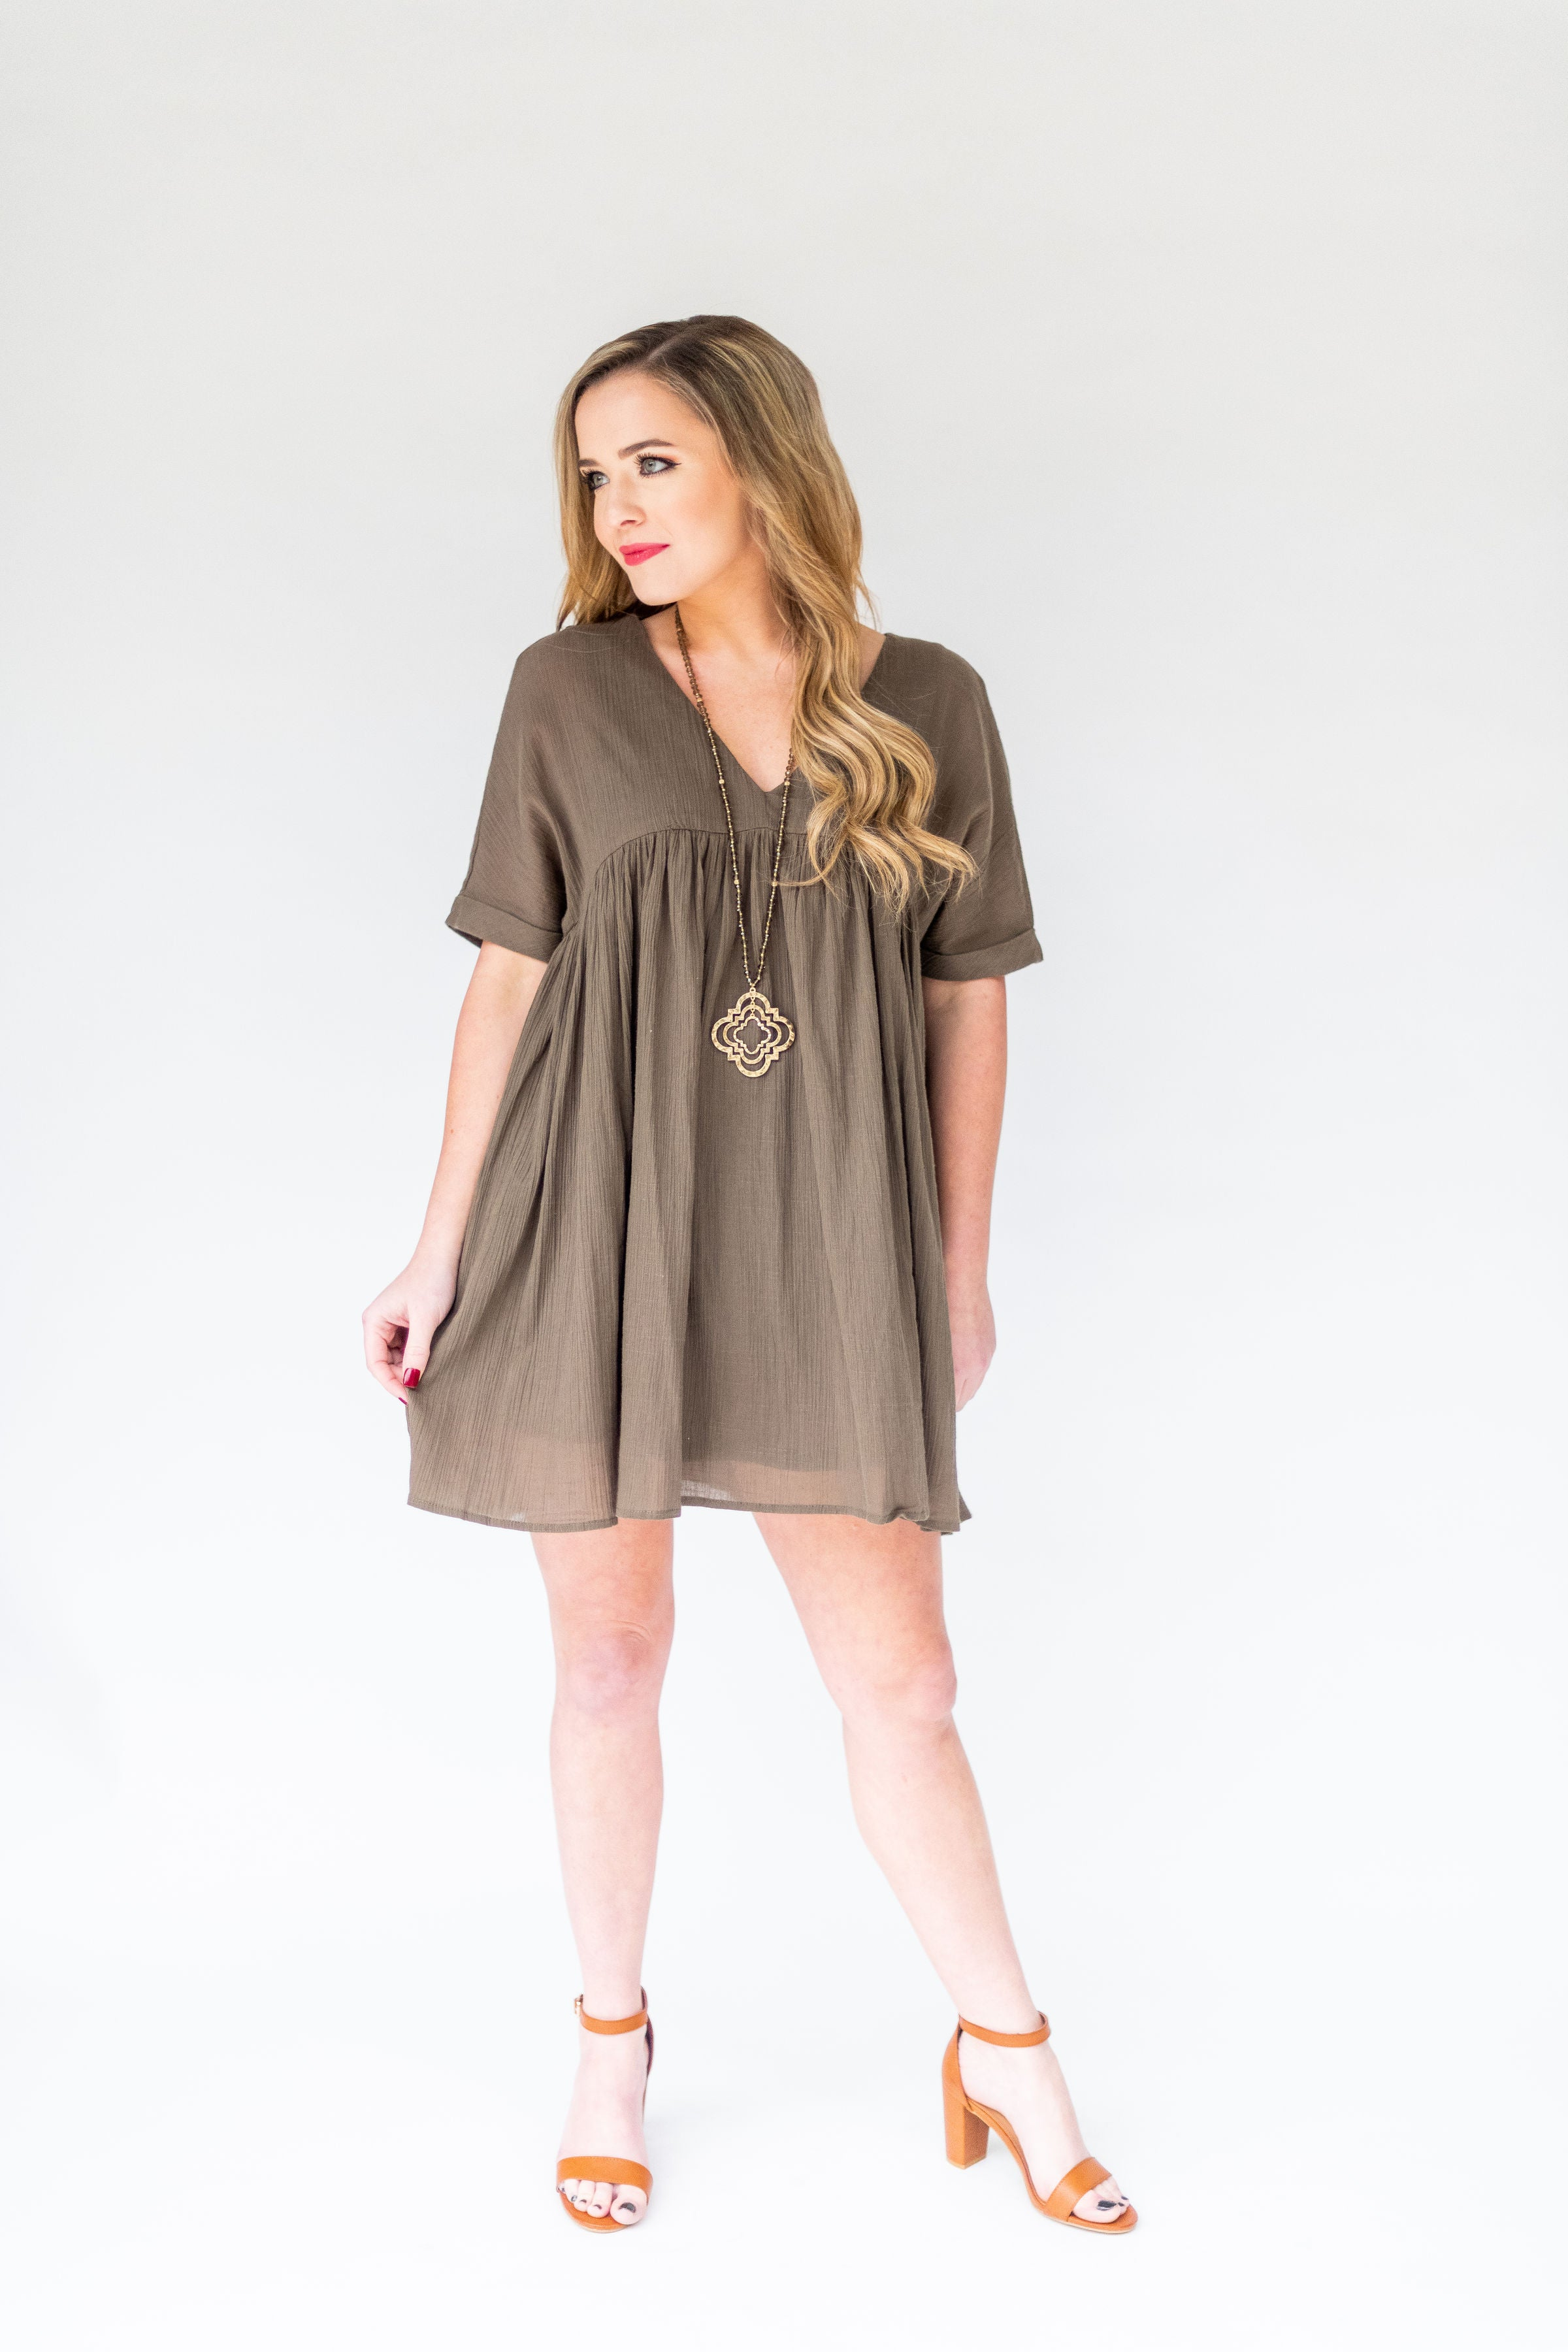 Time Of My Life Babydoll Dress:  Olive & Black